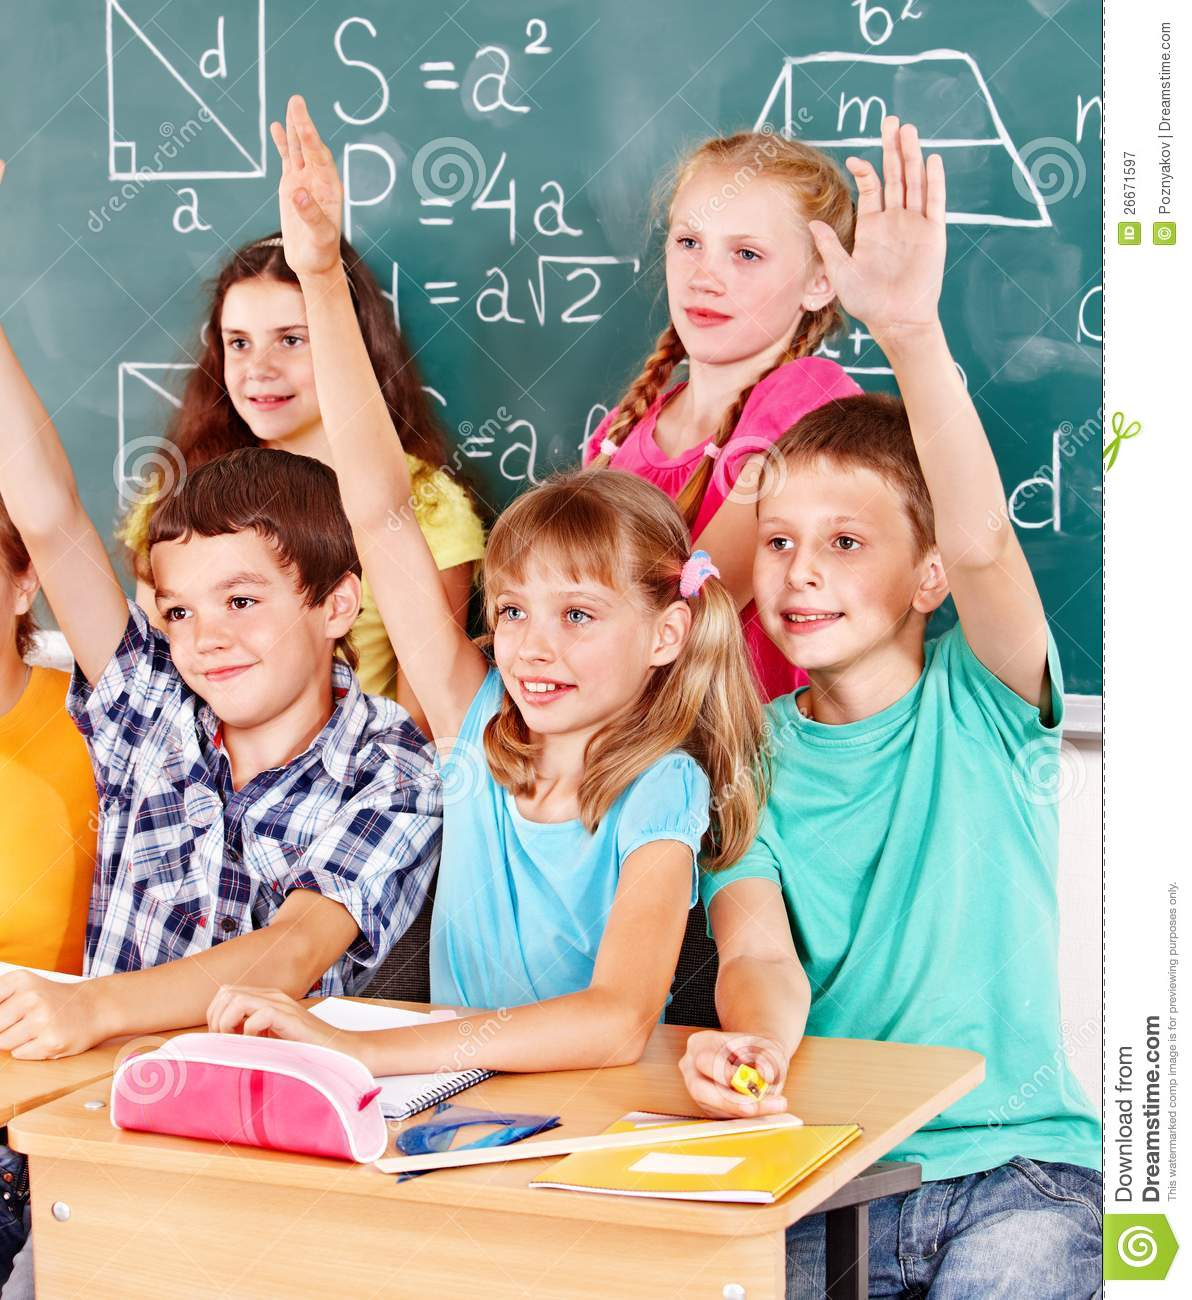 desk for teenager boy with Royalty Free Stock Photography School Child Sitting Classroom Image26671597 on Sleep further 6 Tips To Decorate A Study Room besides Royalty Free Stock Photography School Child Sitting Classroom Image26671597 additionally Coole Zimmer Ideen Fuer Jugendliche together with 1579533.